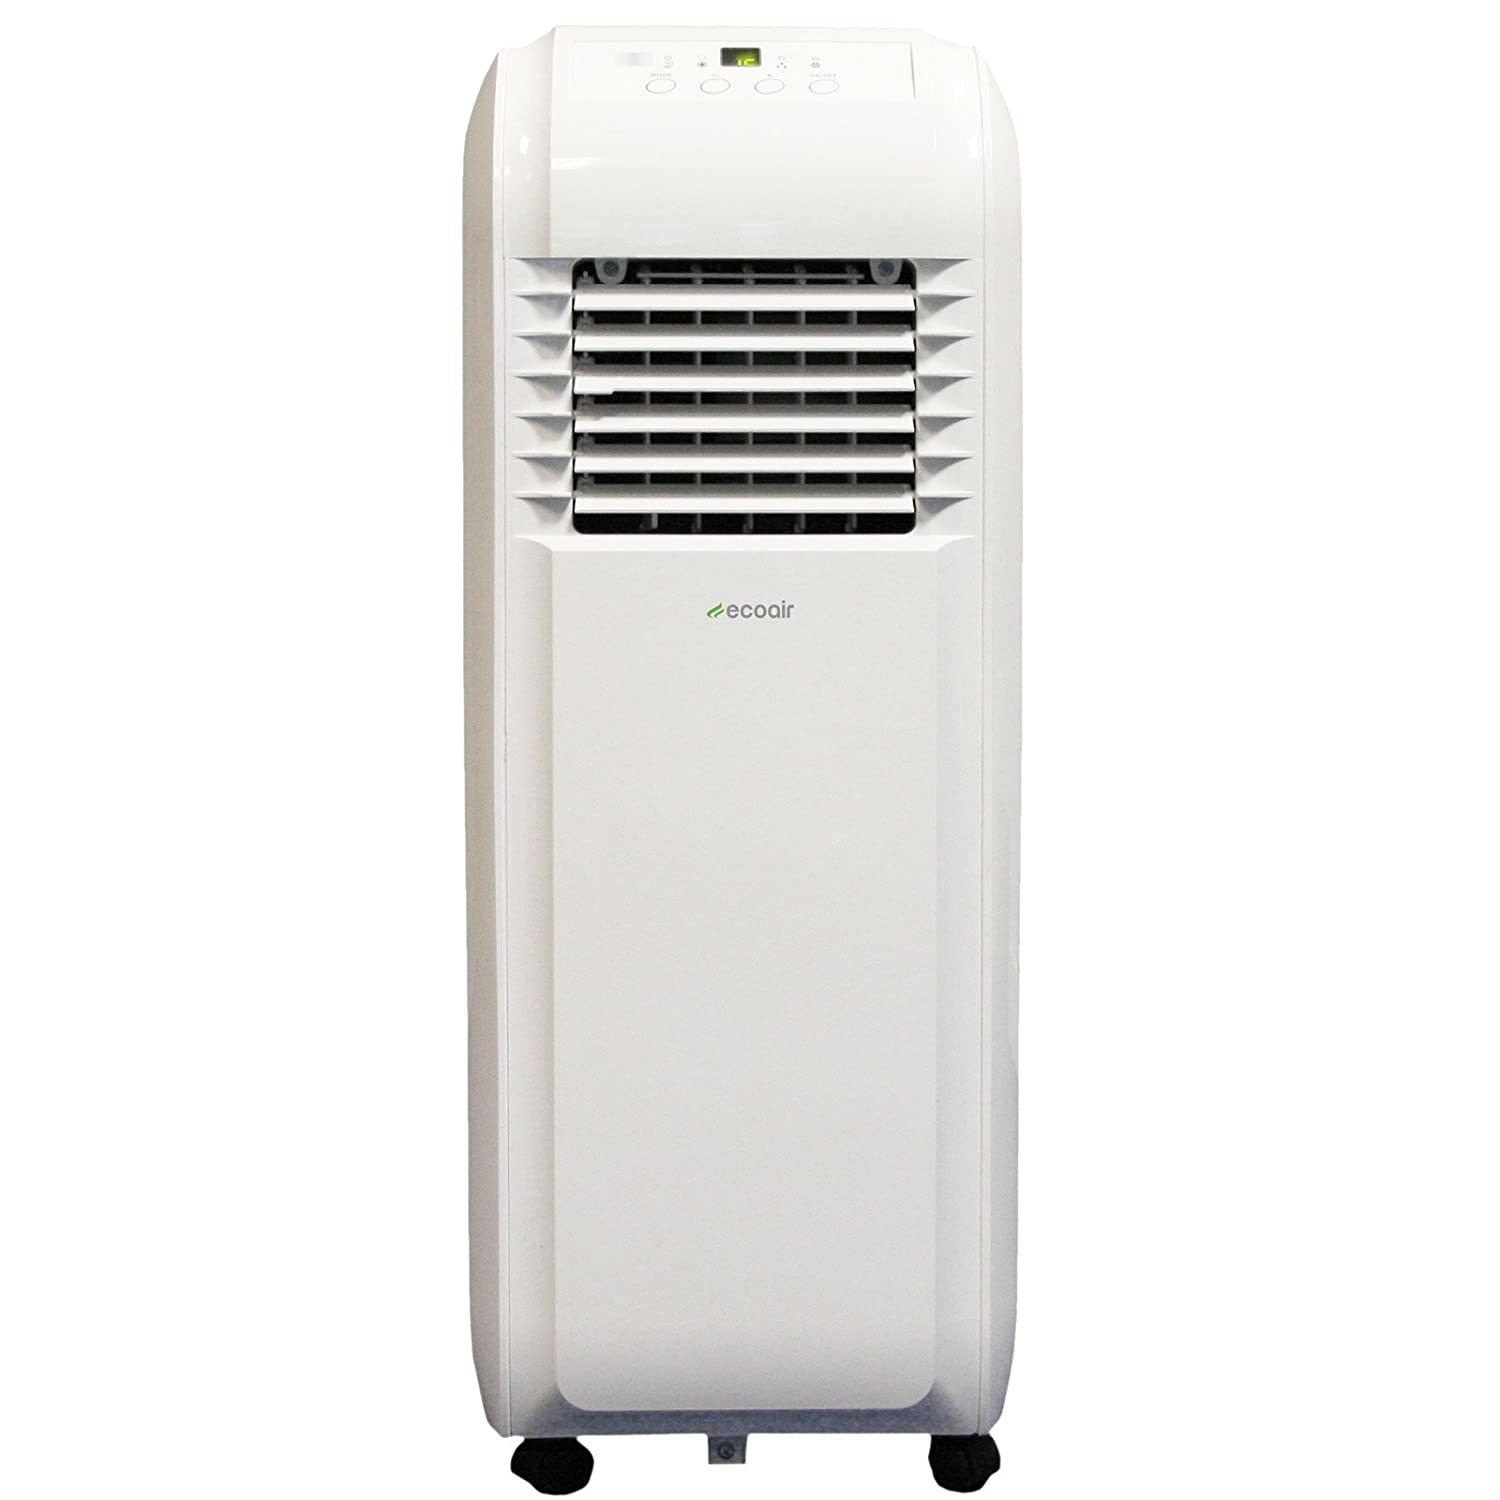 Air Conditioner Unit Ecoair Eco8p 8000 Btu Portable Air Conditioning Unit Cooling Only